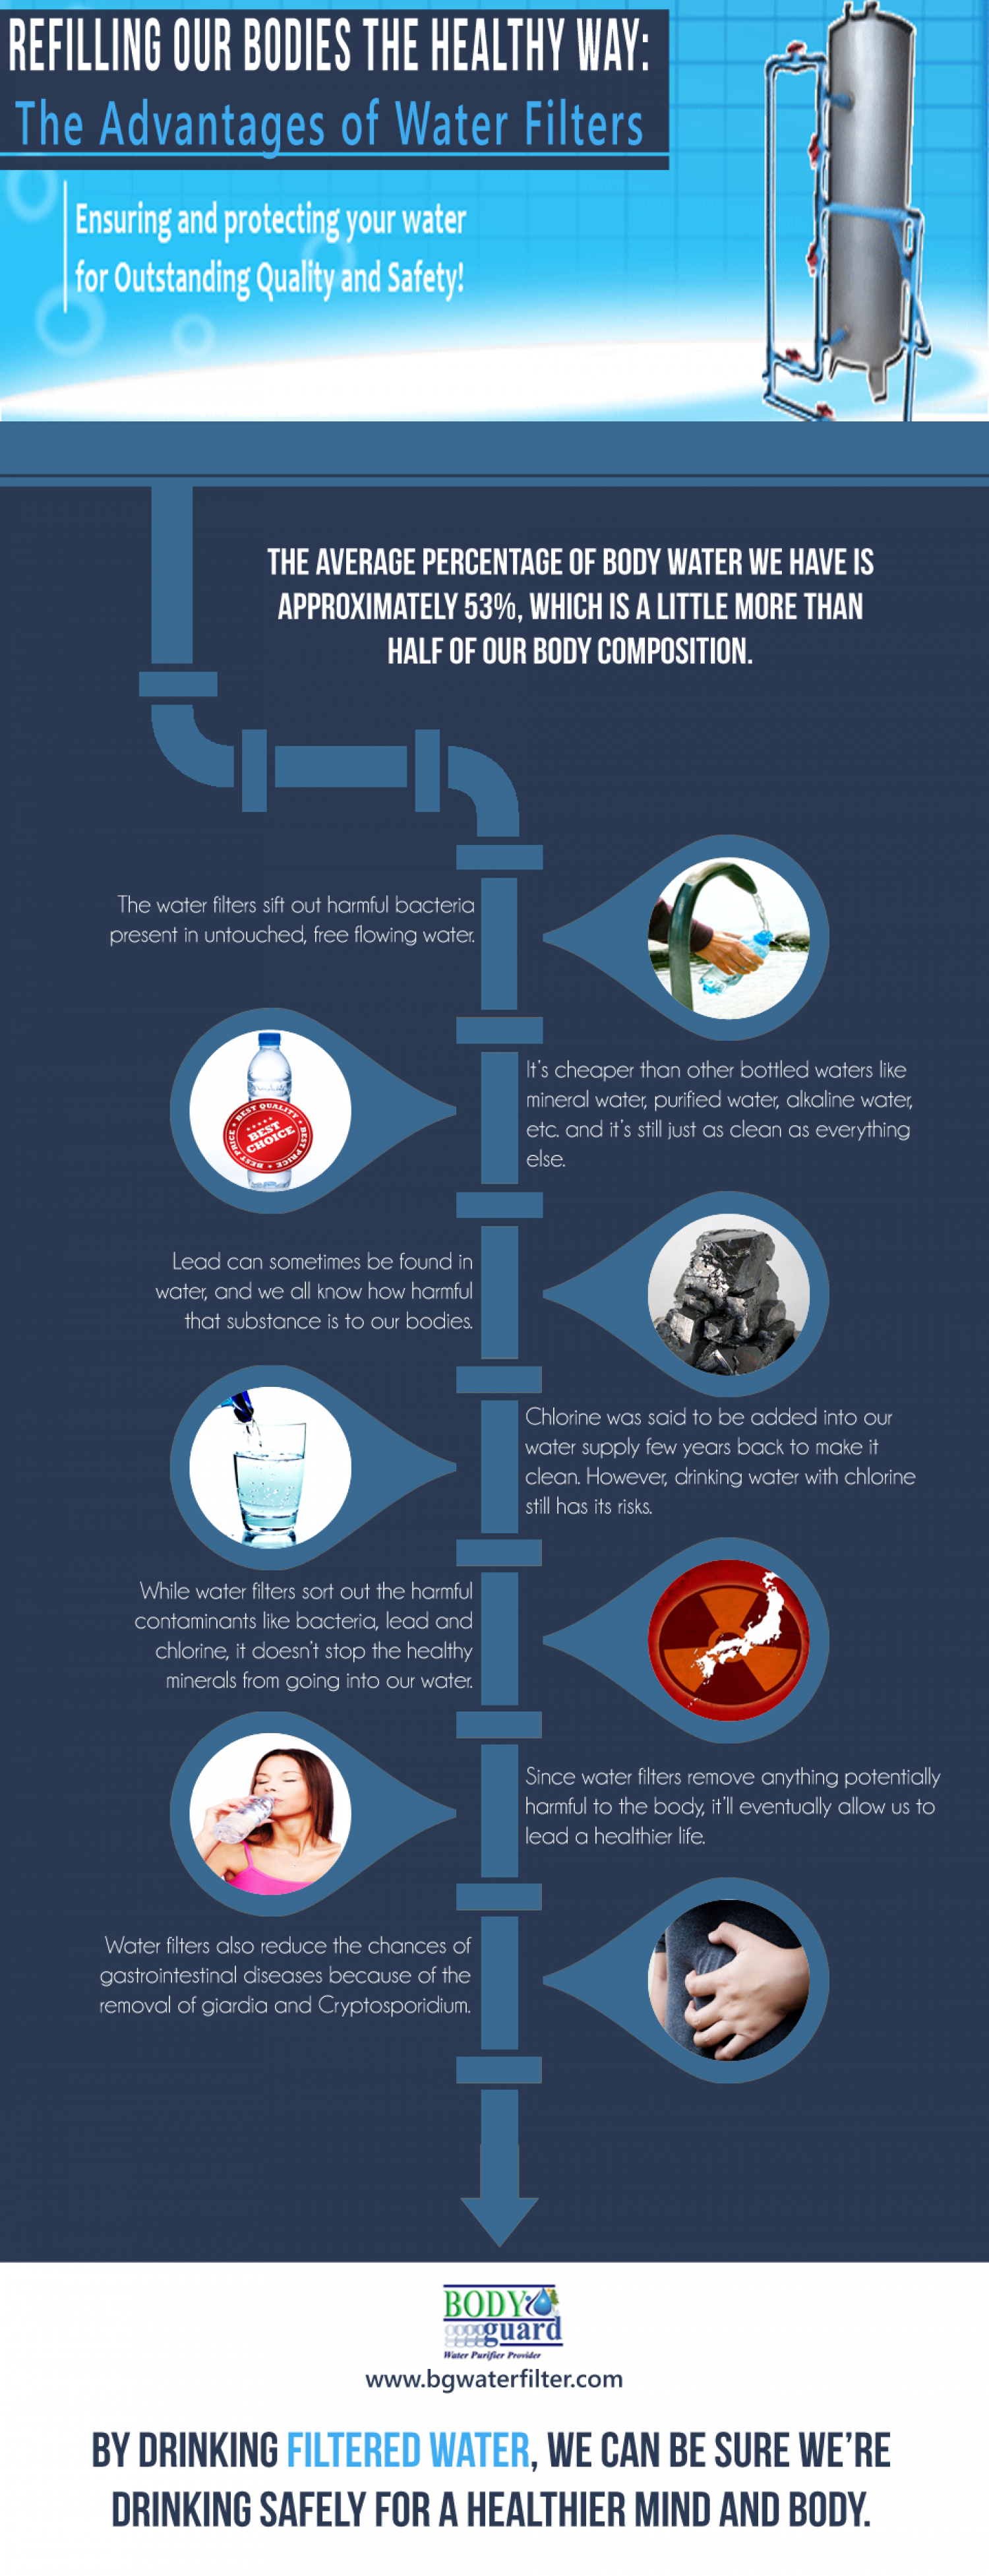 Refilling Our Bodies the Healthy Way: The Advantages of Water Filters Infographic